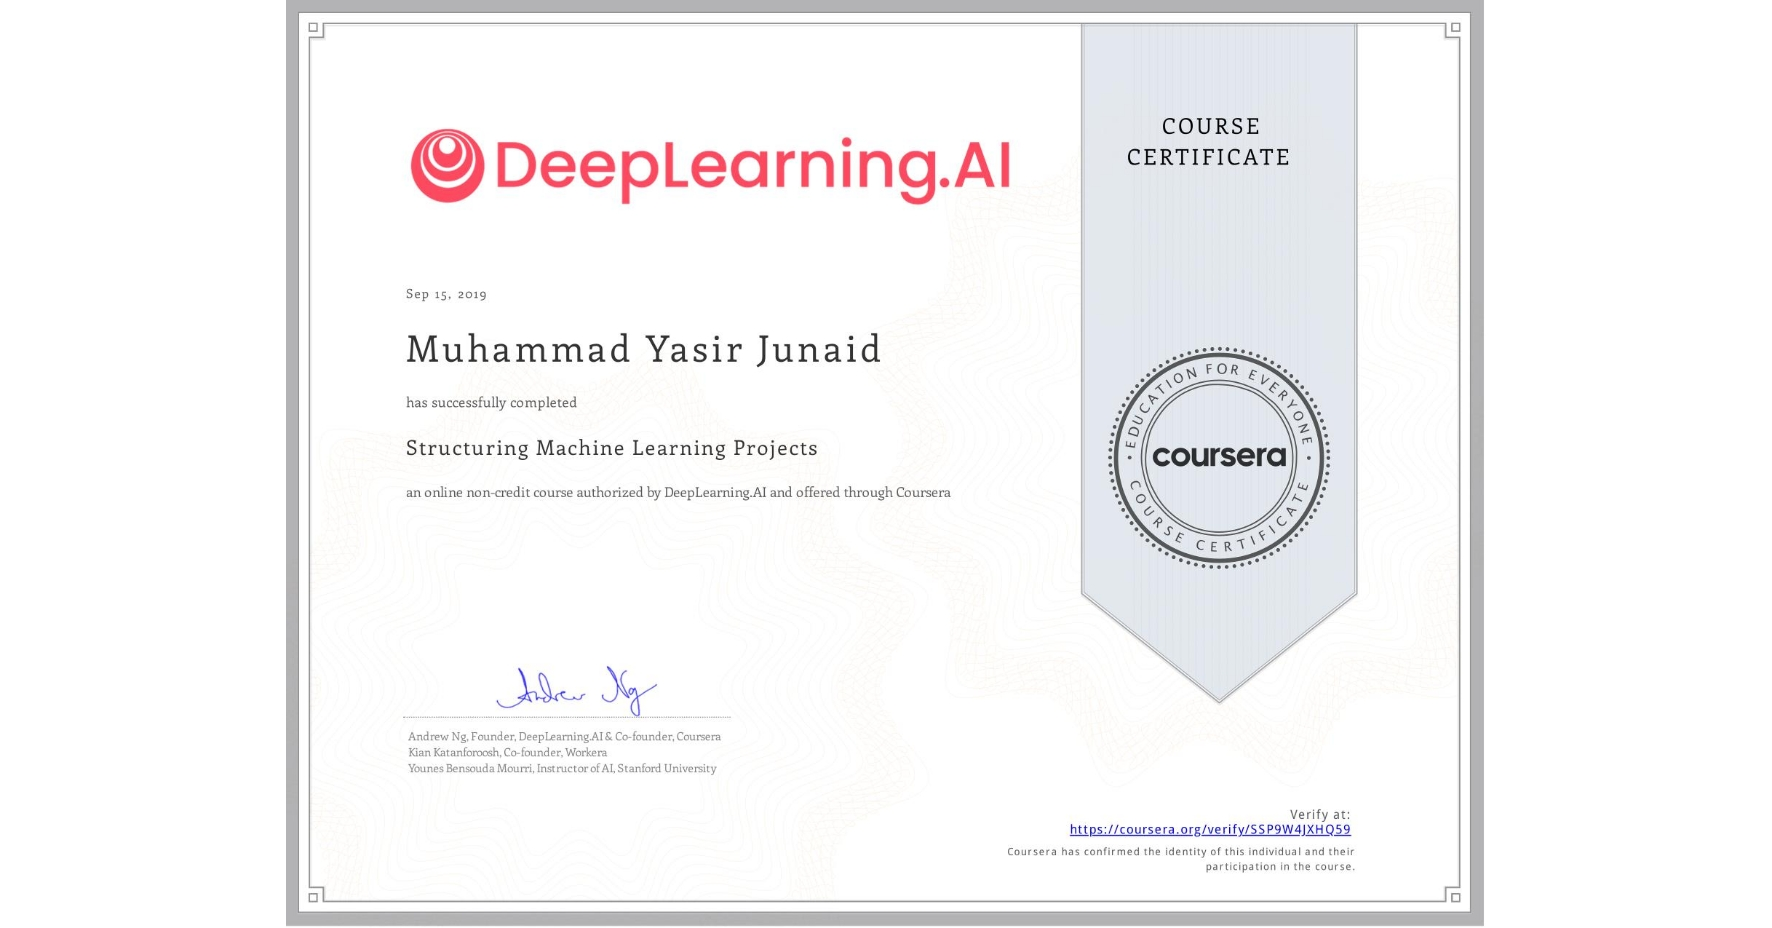 View certificate for Muhammad Yasir Junaid, Structuring Machine Learning Projects, an online non-credit course authorized by DeepLearning.AI and offered through Coursera